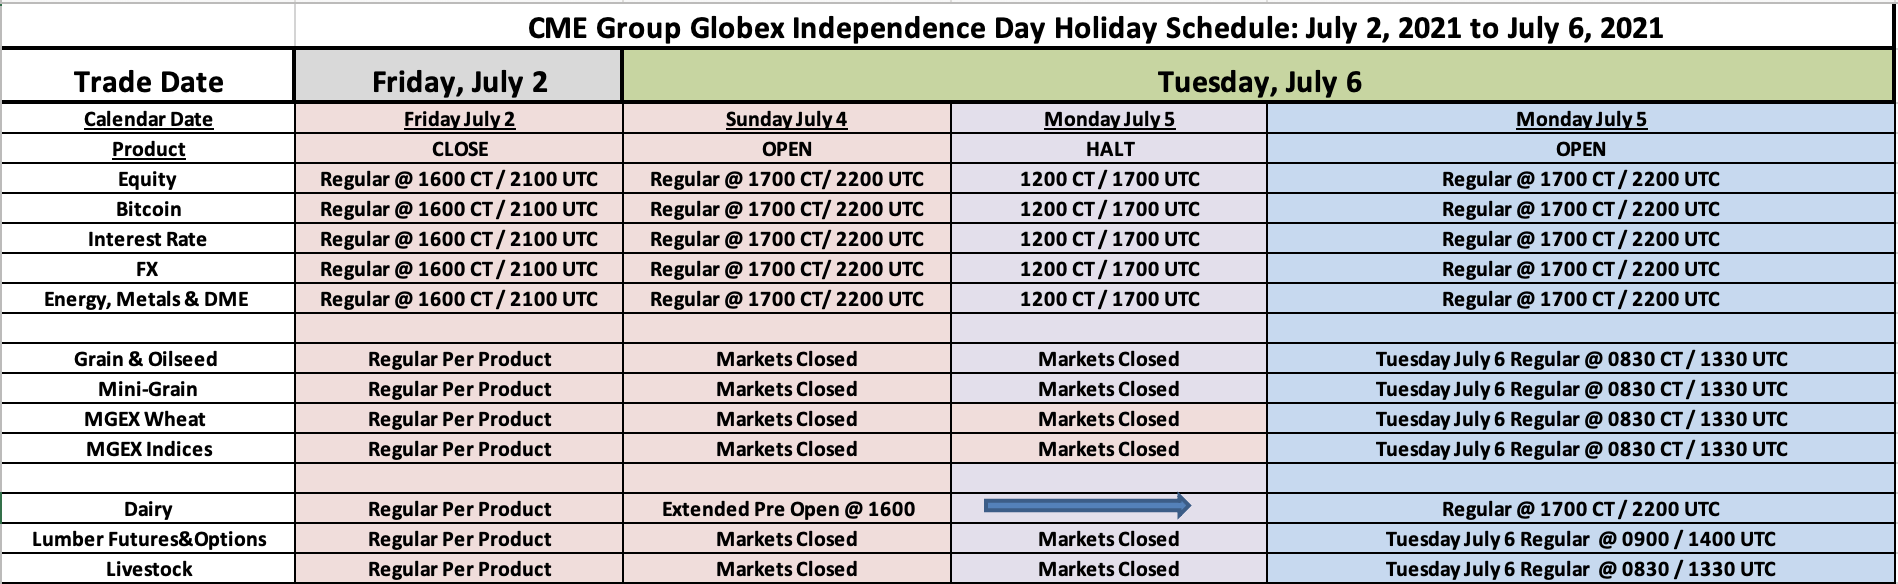 CME - Independence Day Holiday Schedule - July 2 - 6, 2021-1